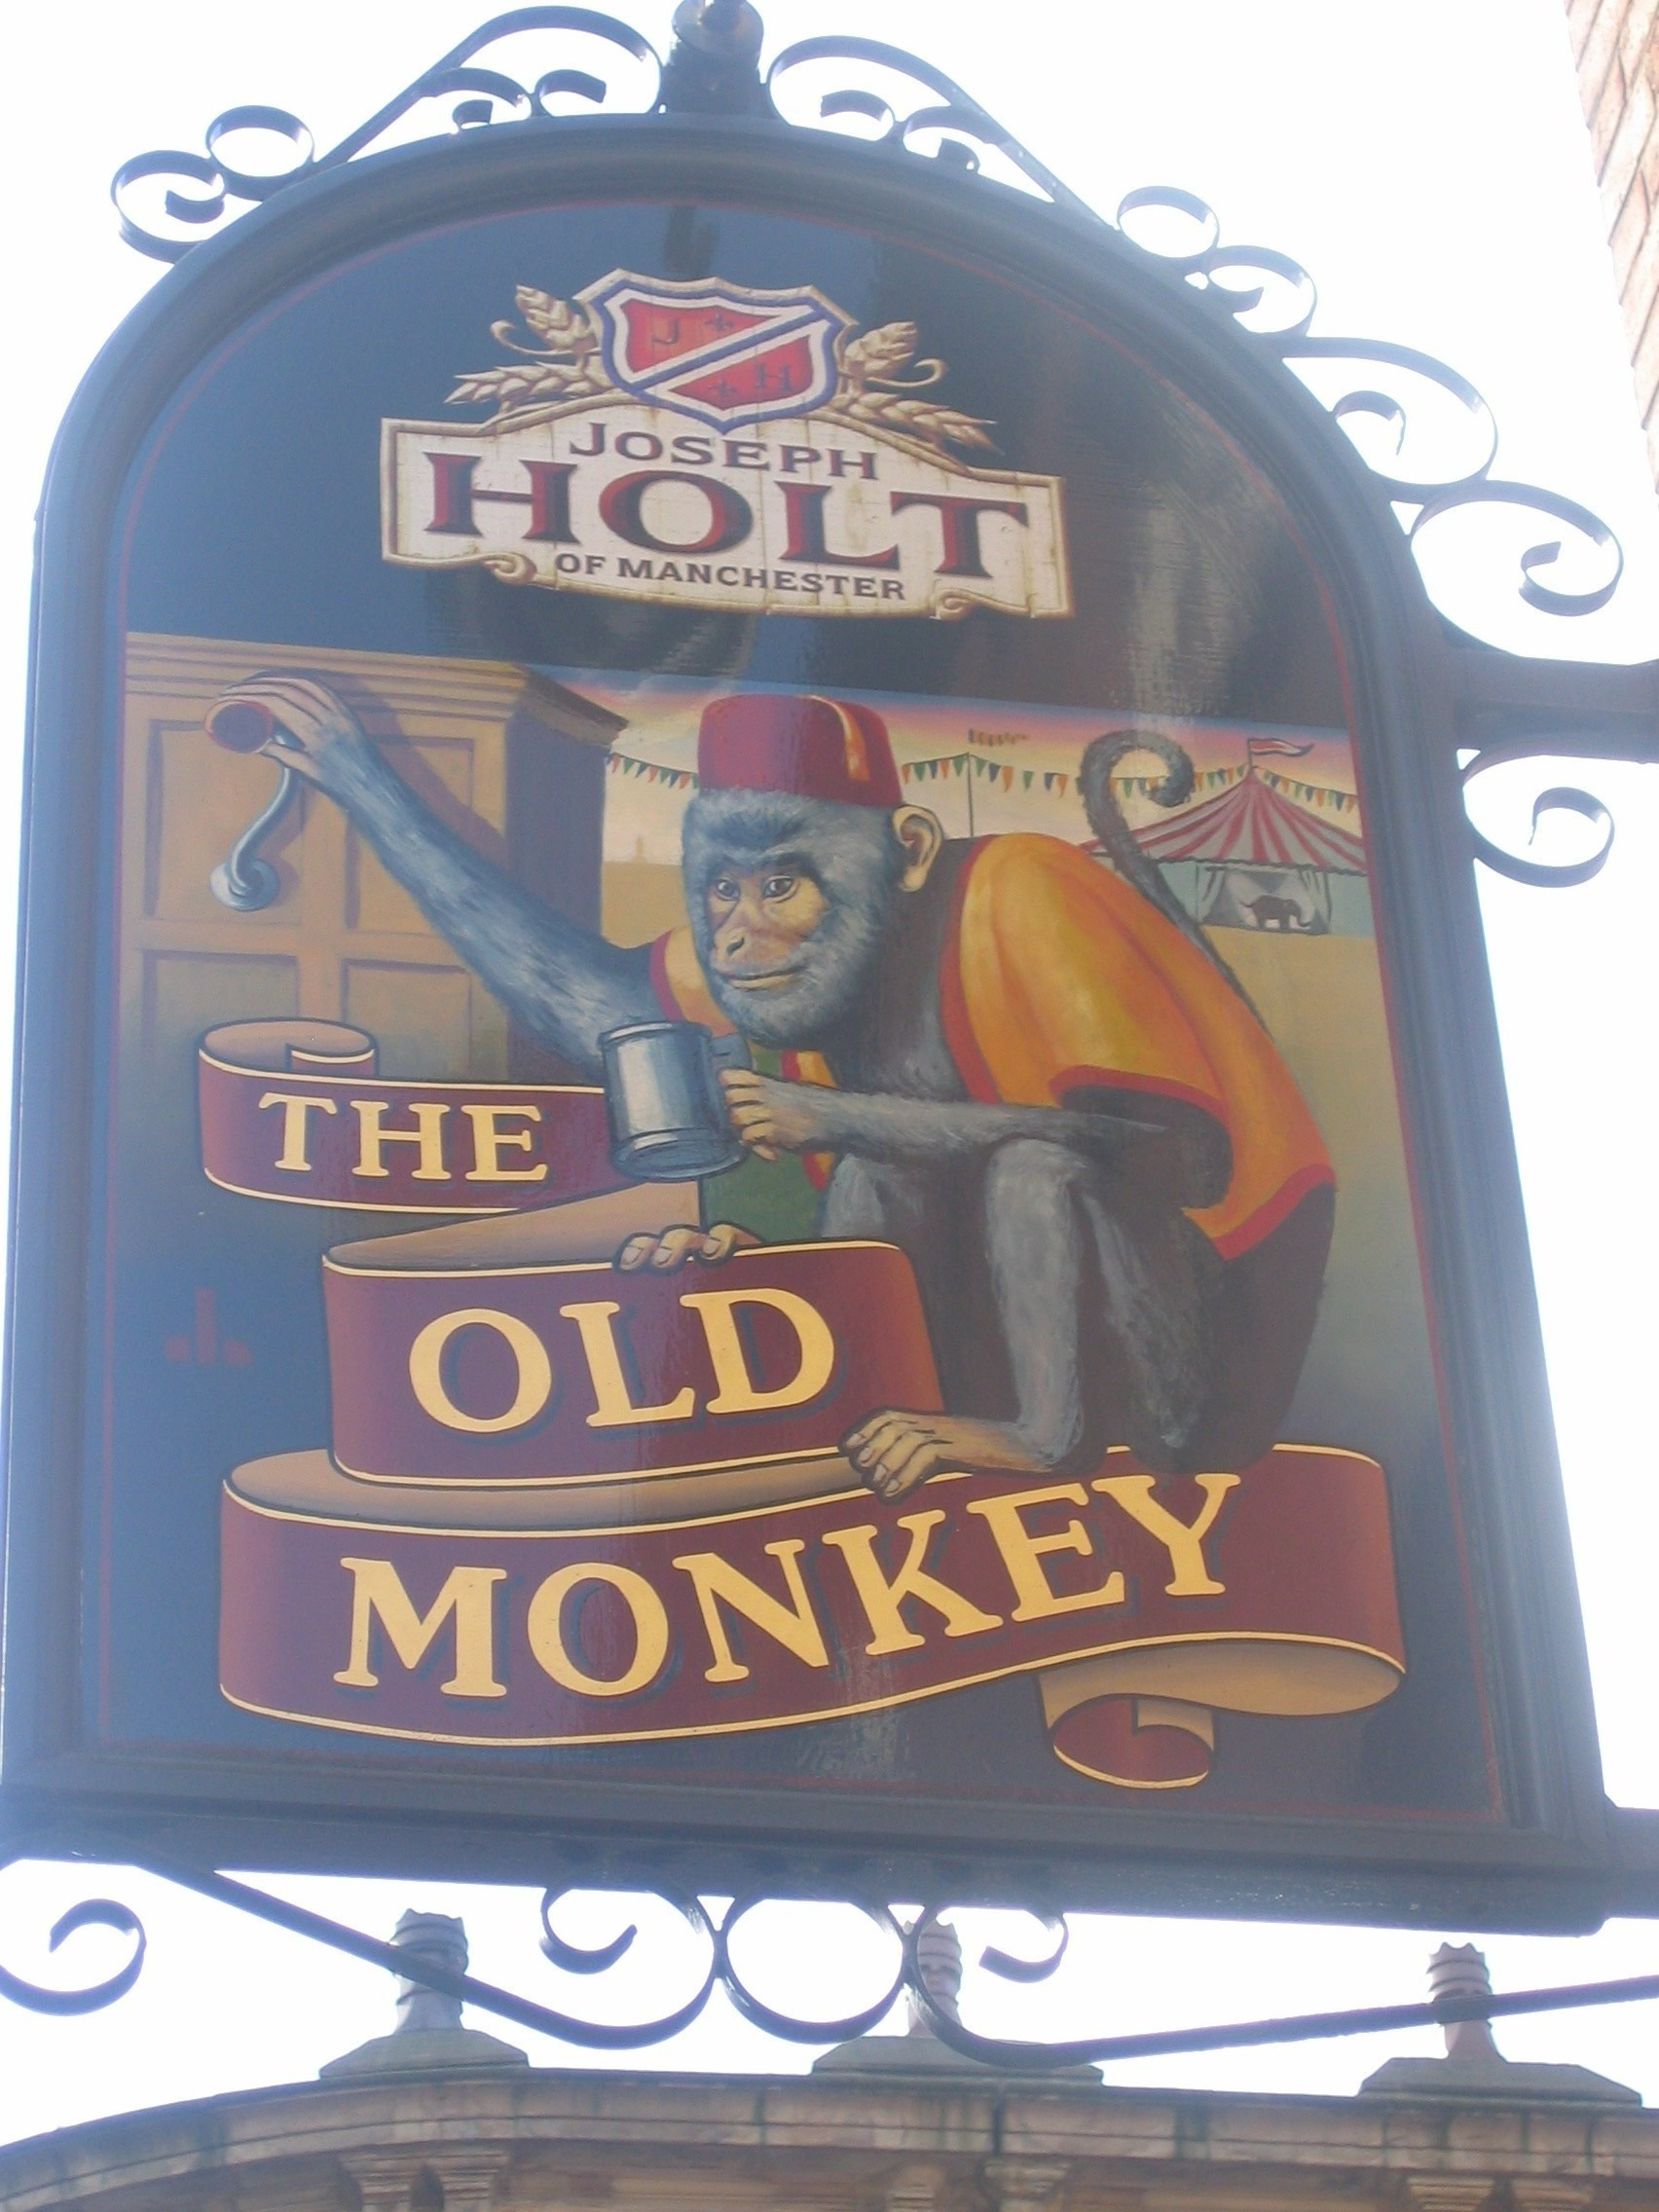 Photo taken by me – pub sign for The Old Monkey – Manchester